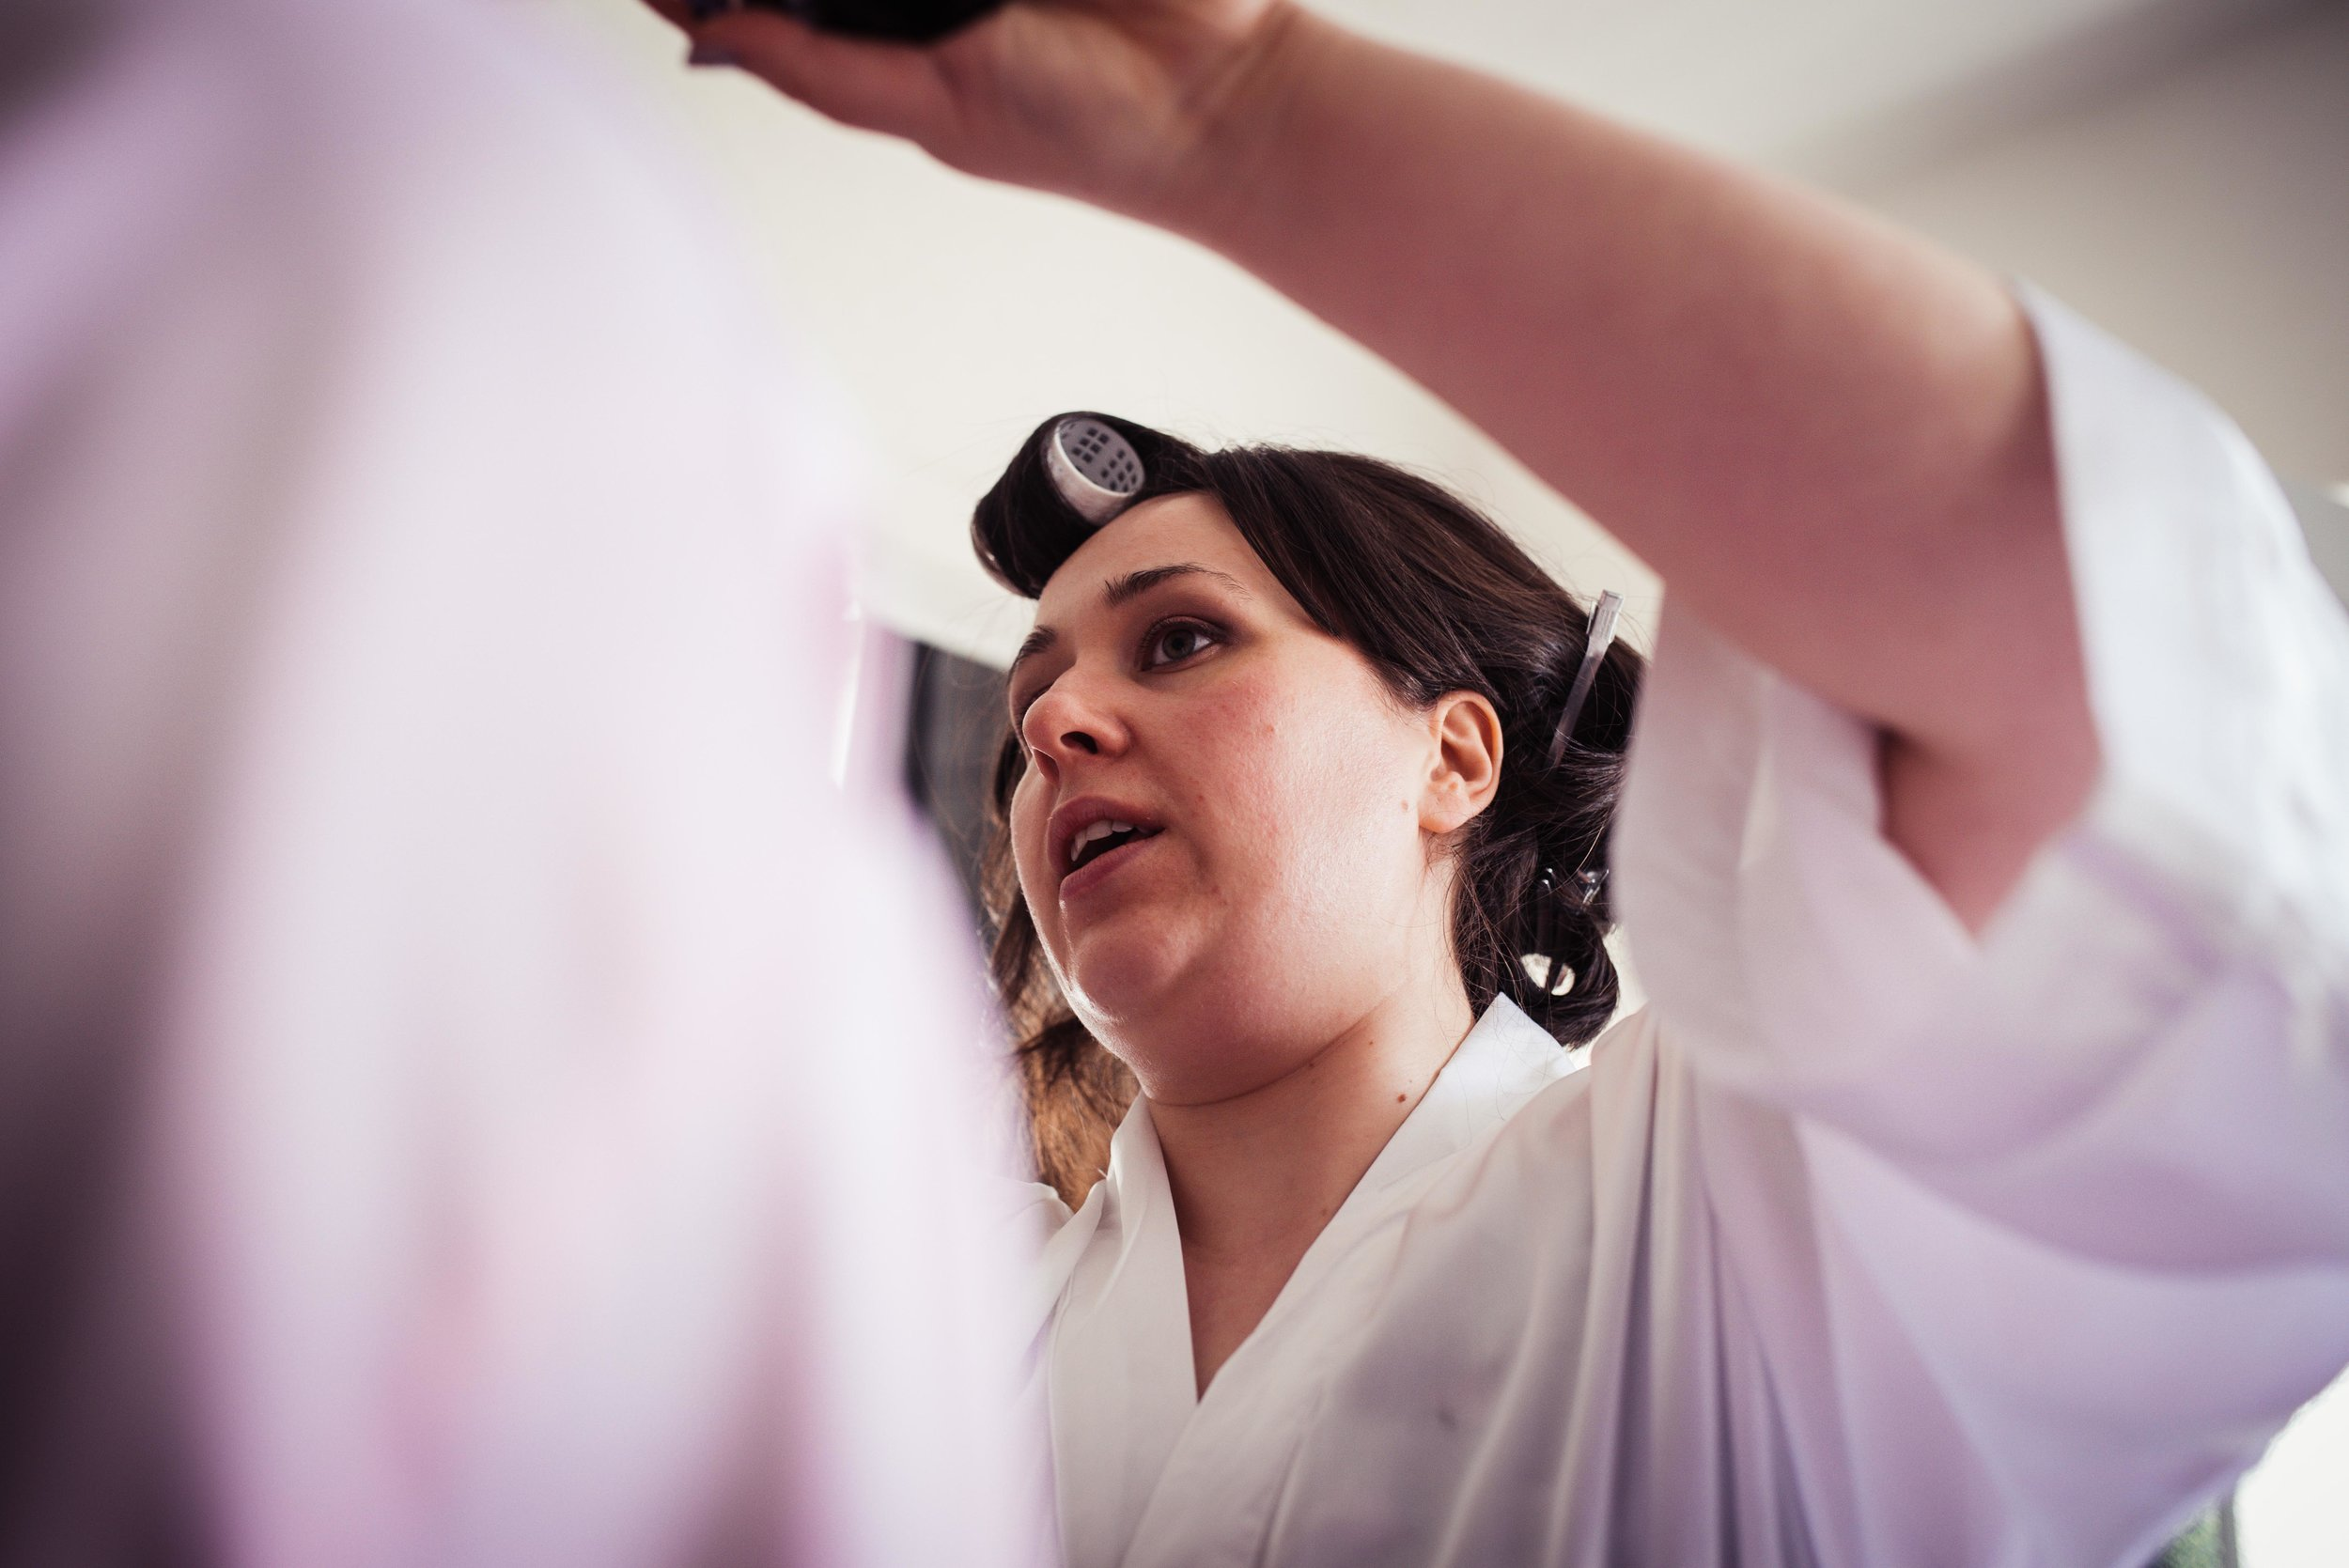 Concentrating bride on the morning of the wedding